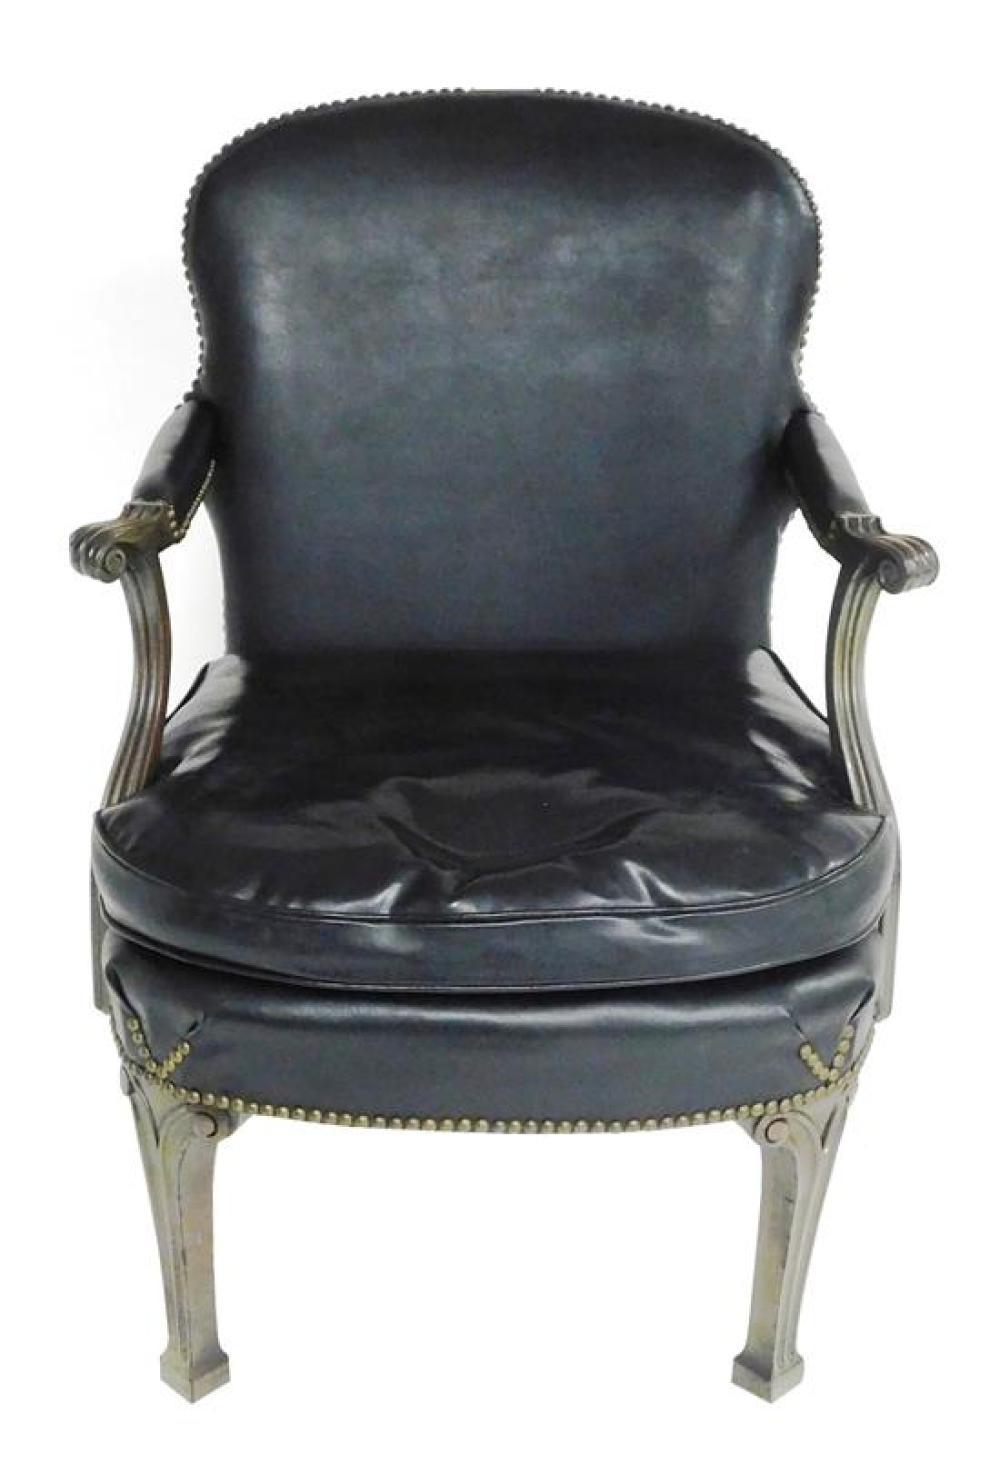 English style library chair, black Naugahyde upholstery to shaped back, removable seat cushion and skirt, brad border with name plaq...